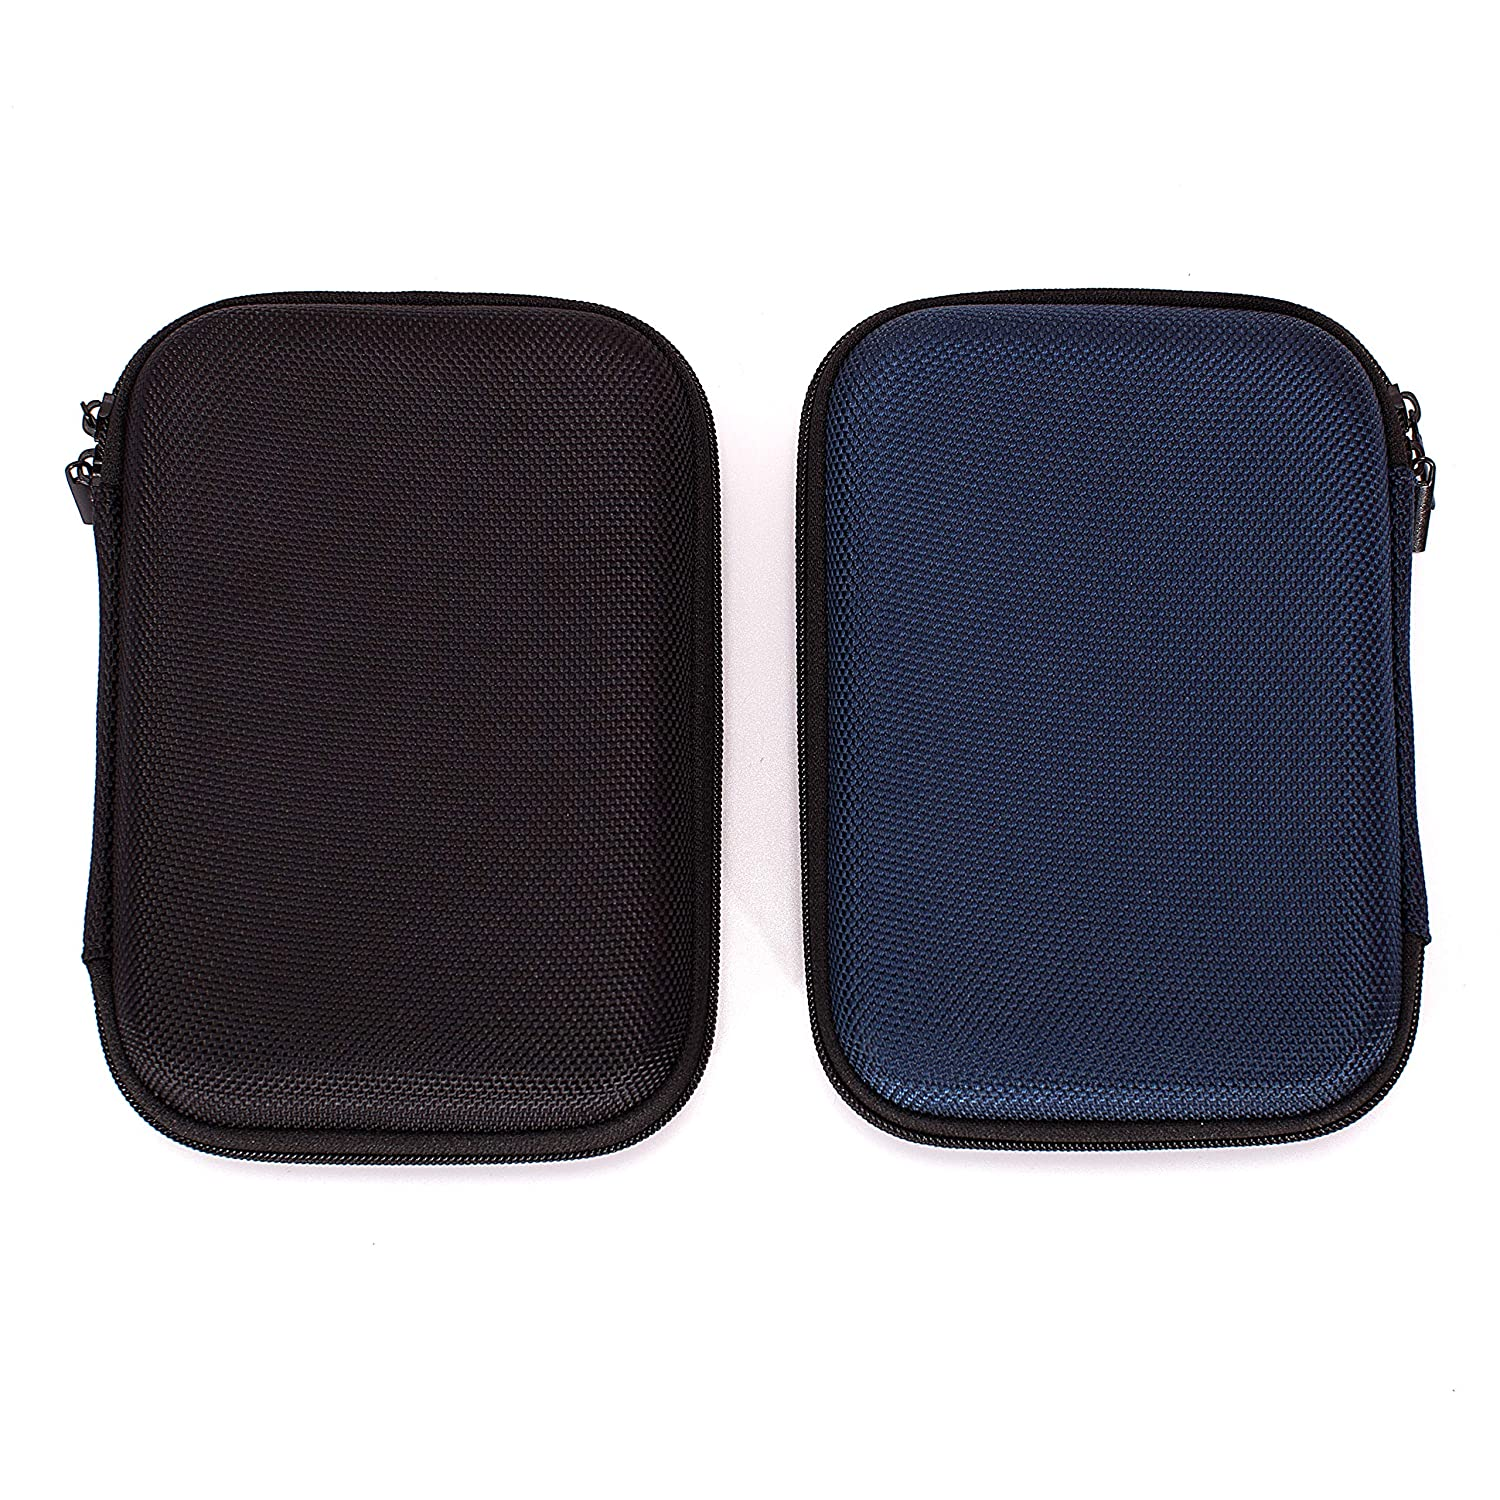 Ginsco 2-Pack (Black & Blue) Hard Carrying Case for Portable External Hard Drive Toshiba Canvio Basics Seagate Expansion WD Elements